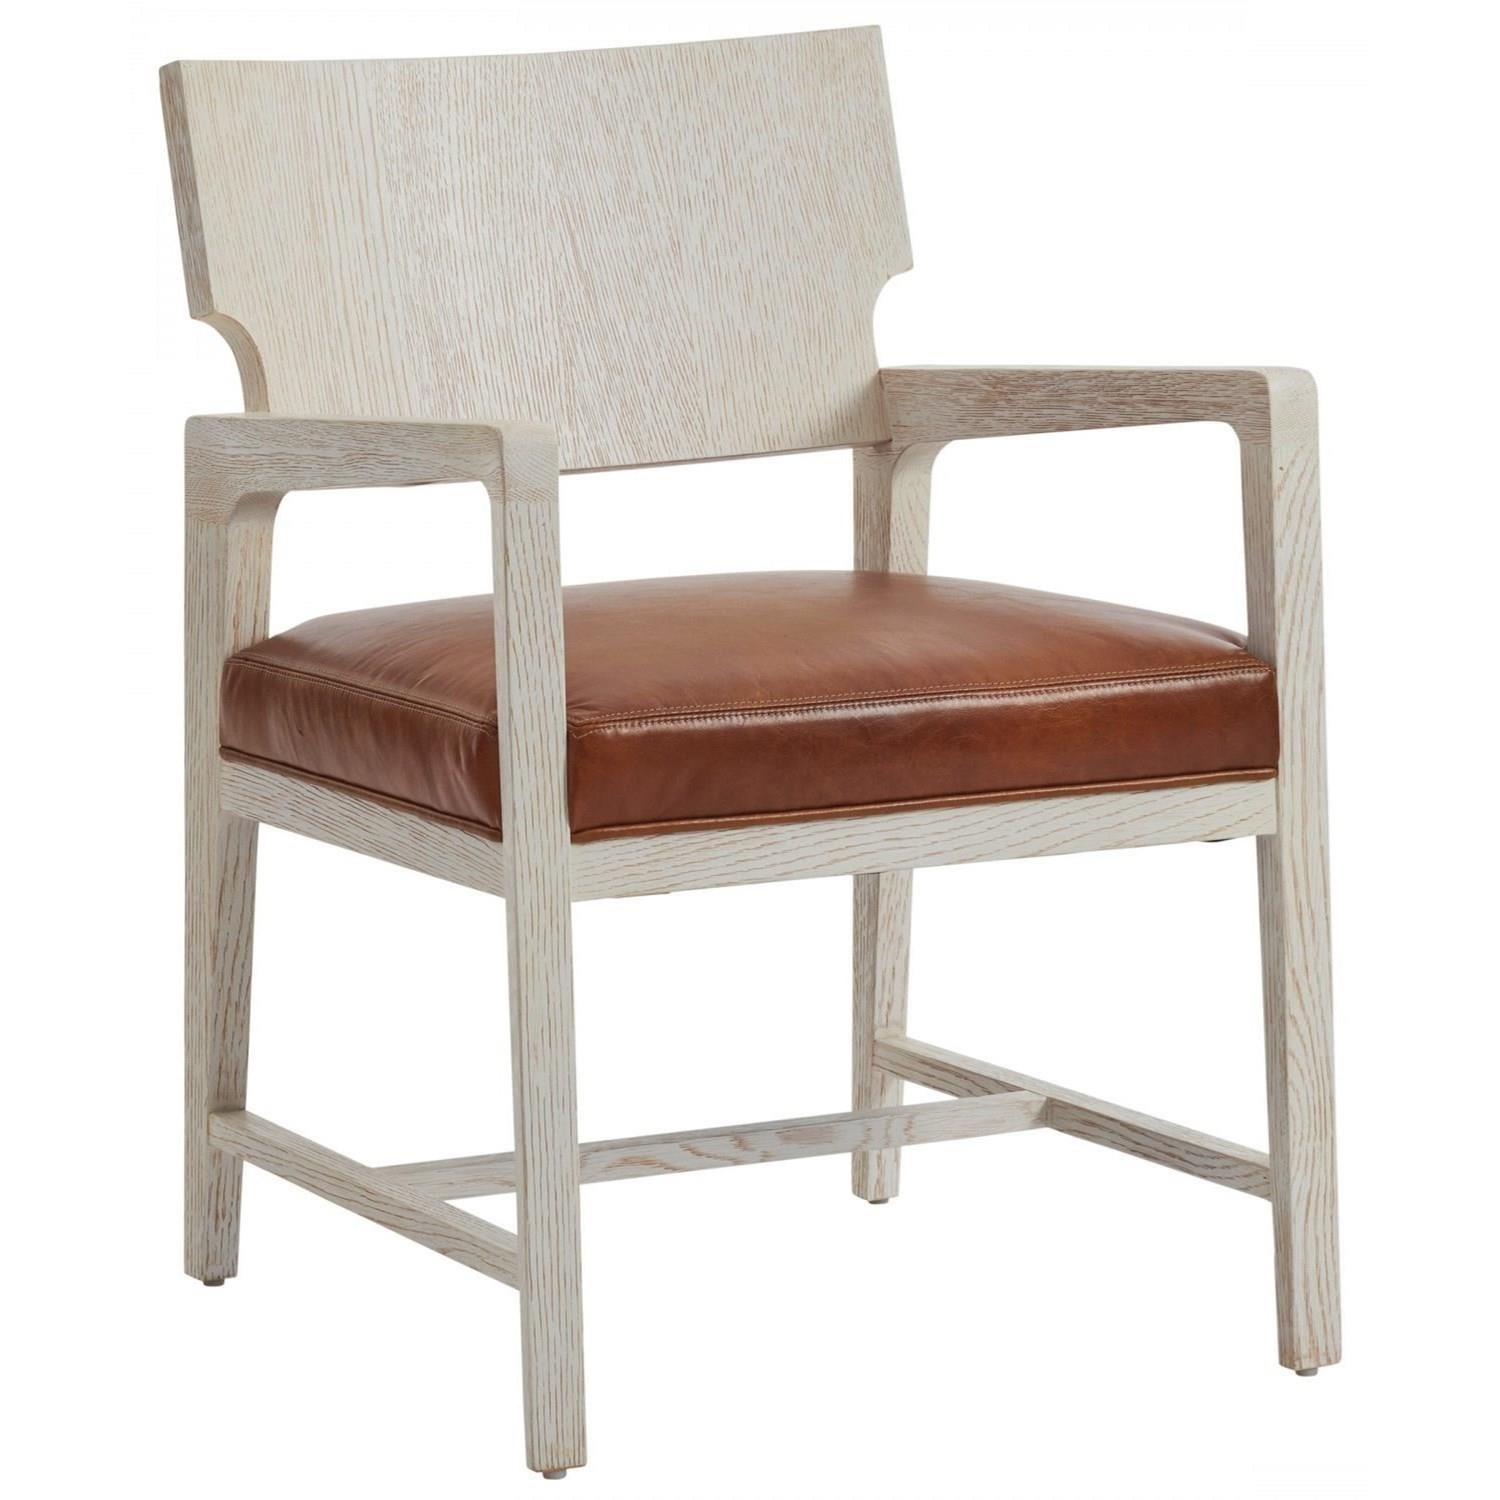 Carmel Ridgewood Arm Chair by Barclay Butera at Baer's Furniture